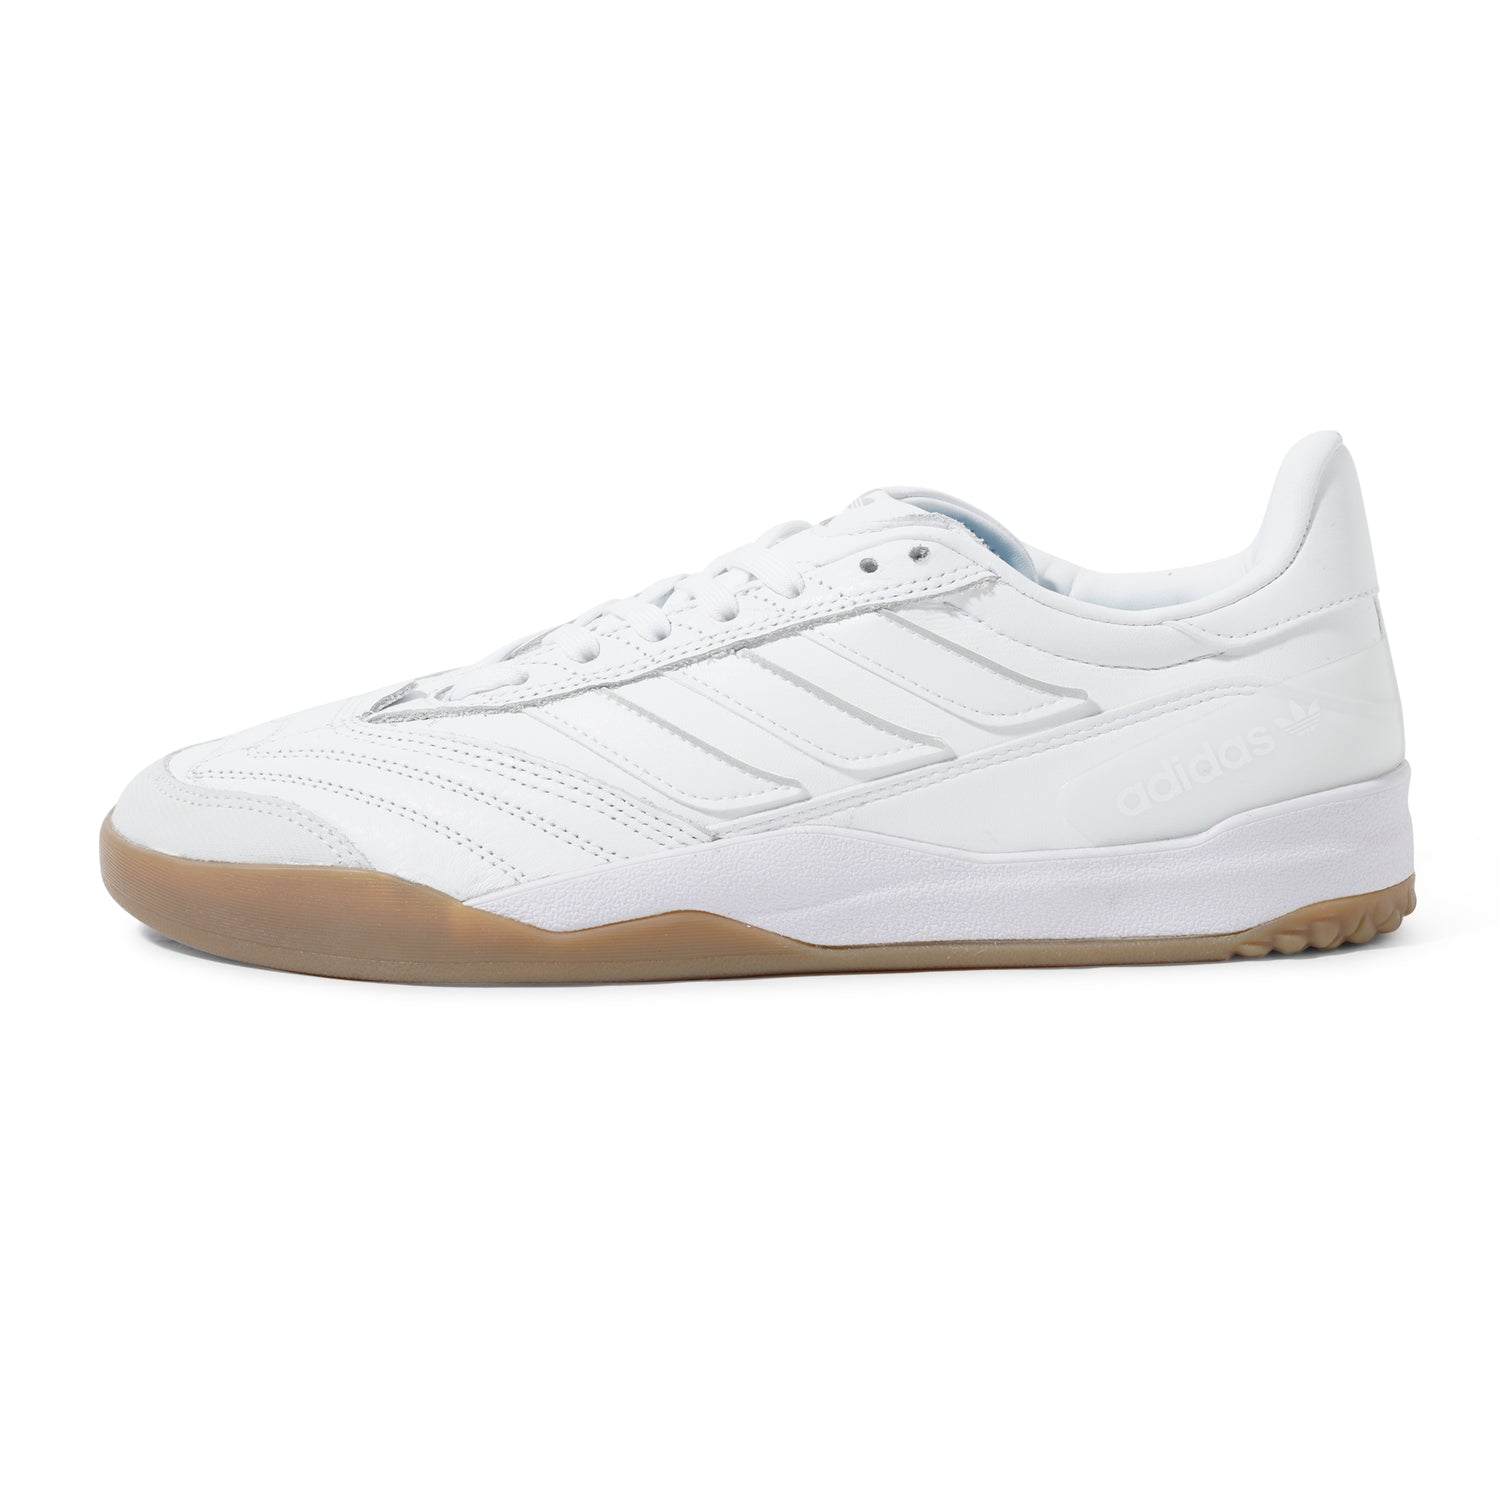 Copa Nationale, White / Silver / Gum